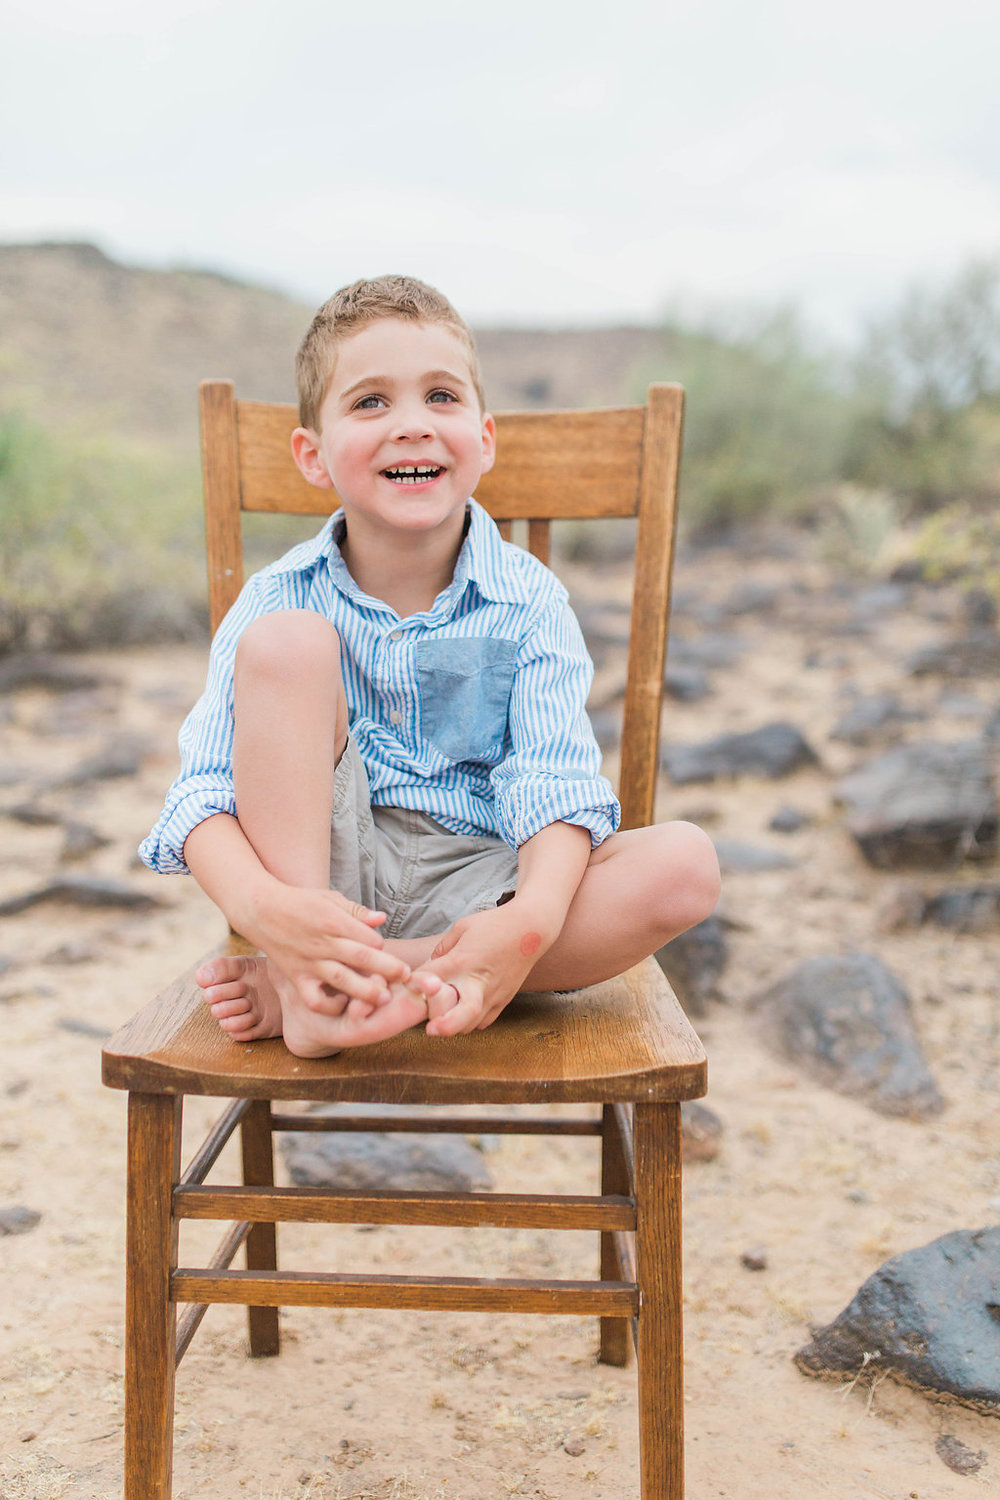 Desert Family Photo Shoot in Arizona   Emma Rose Company   Portrait Photographer   Seattle Wedding Photographer   Adorable Family Photo Shoot Outside   Family Posing   Cute Kids   Family Photo Shoot   Husband and Wife Pictures   What to Wear for pictures   Little Boy Sitting on Wooden Chair